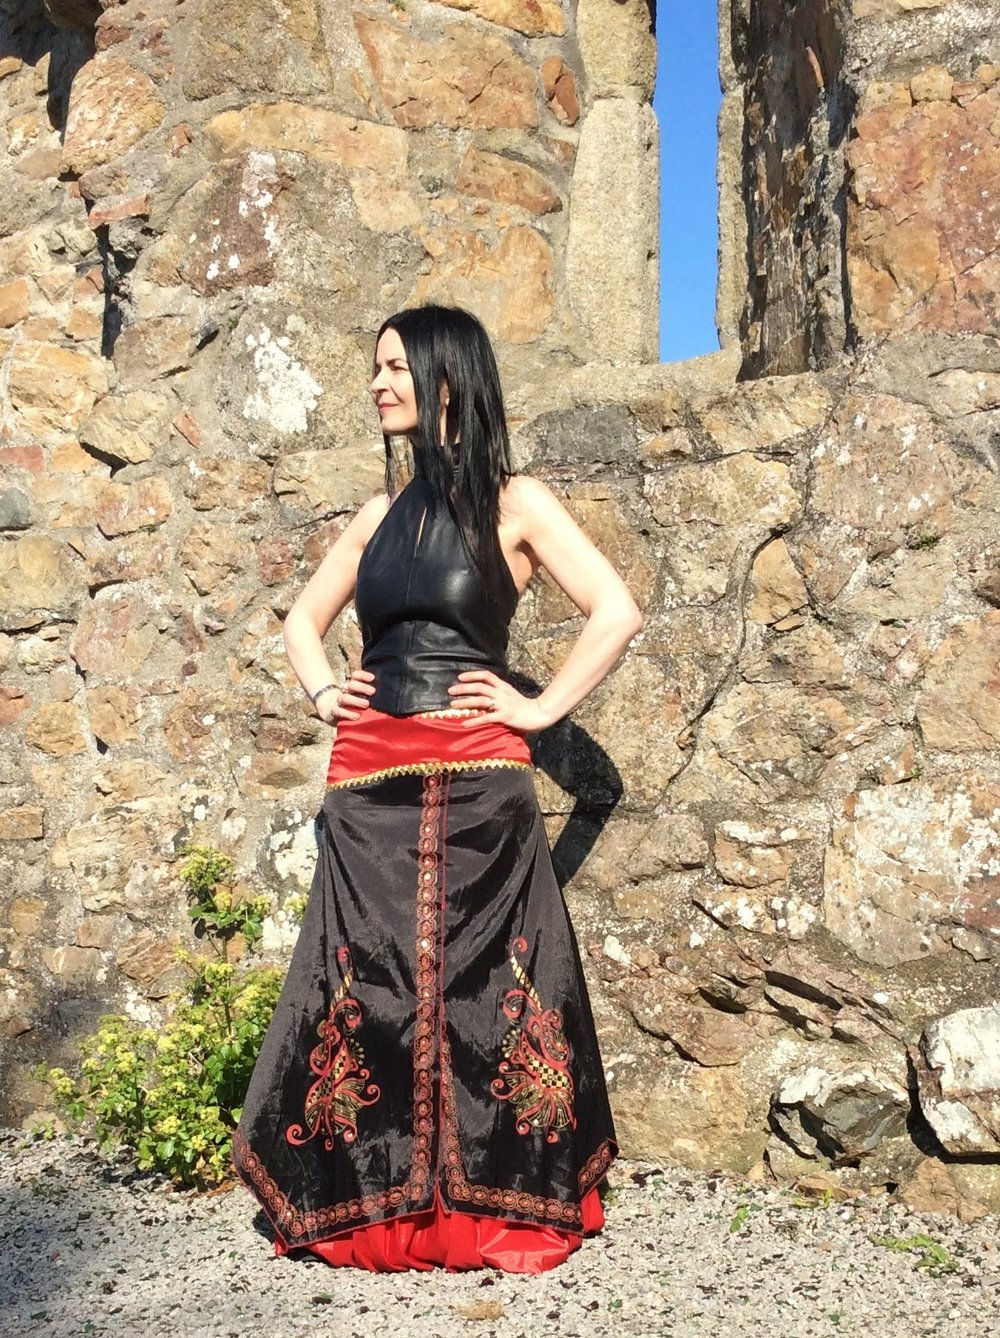 This look is quite unusual and leather 90's top with Indian skirt gives it a mysterious almost tribal look.